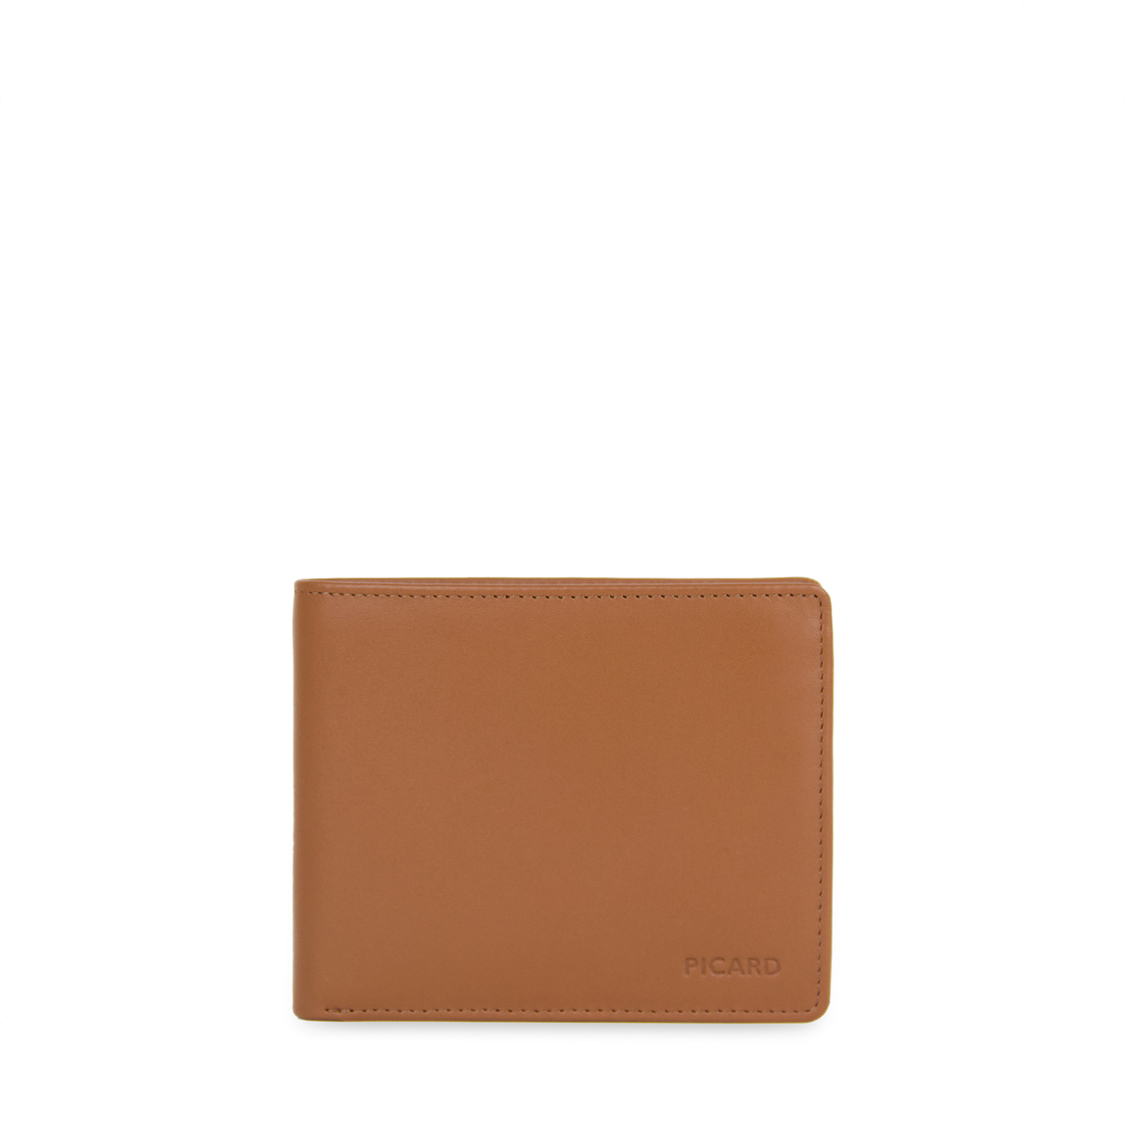 Picard Alois Card Holder Cognac